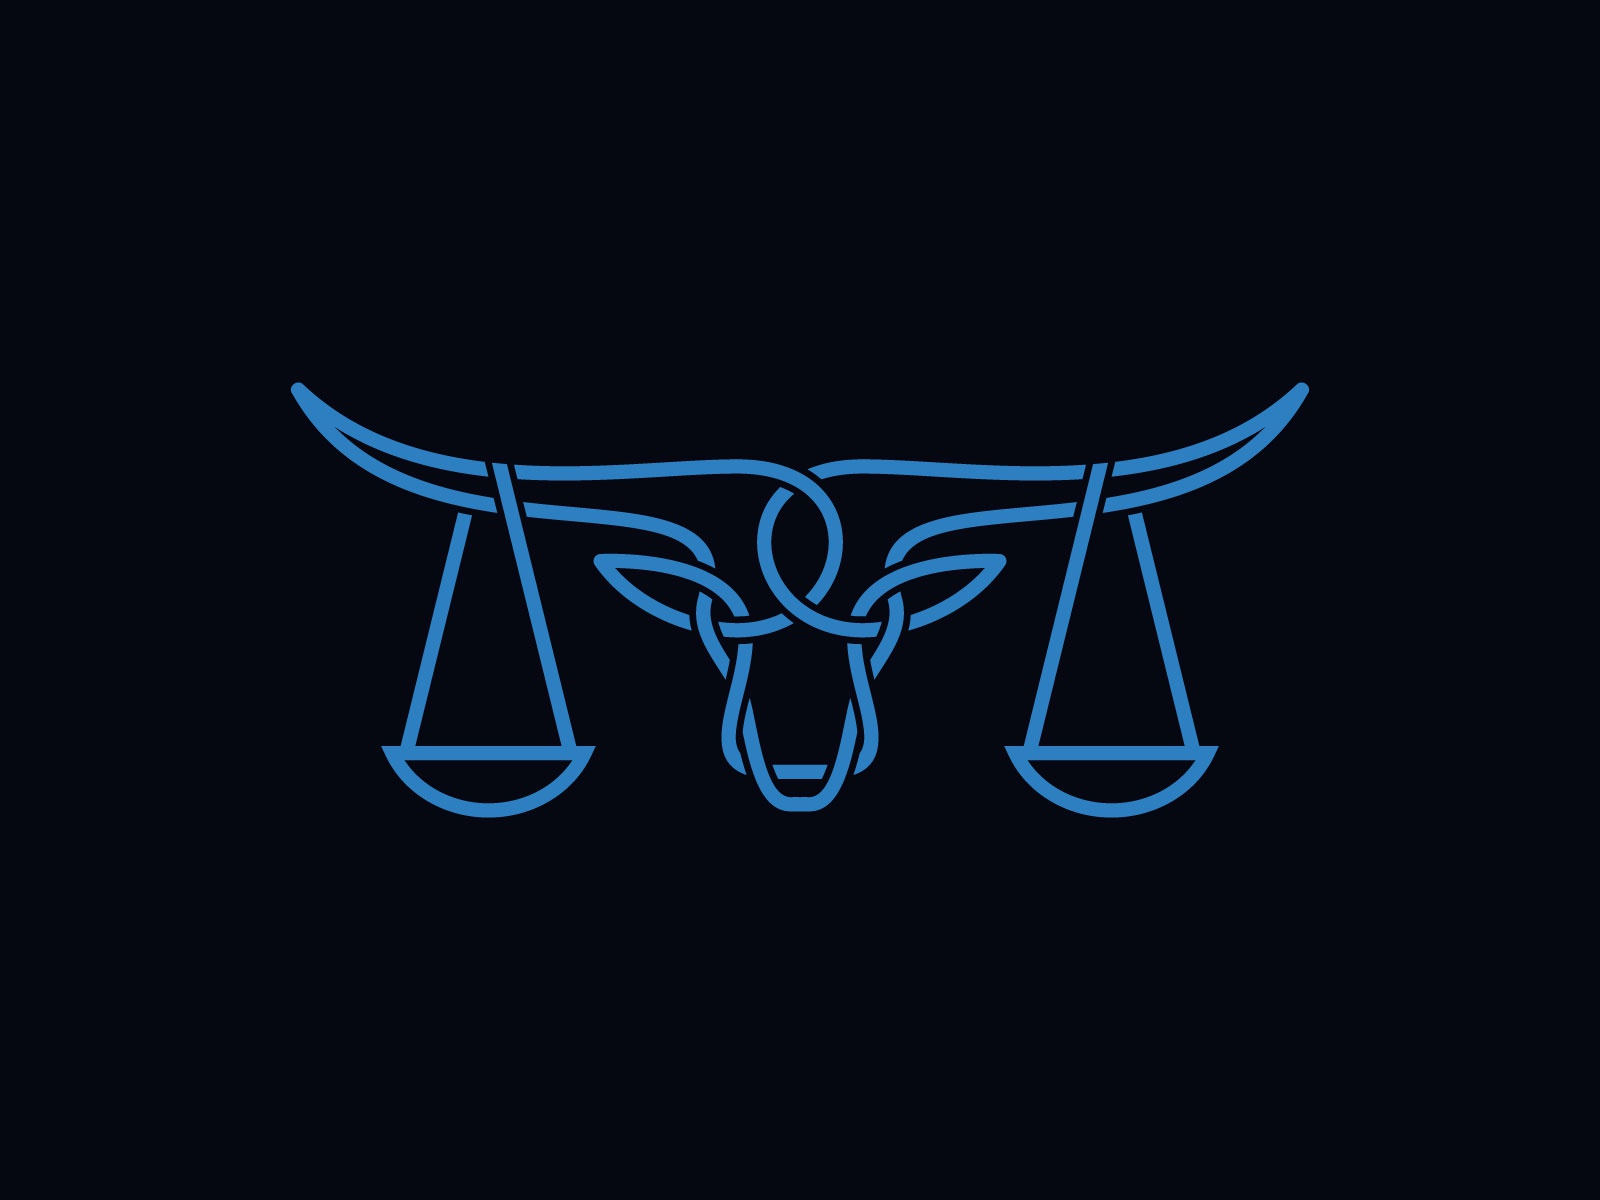 Bull And Neraca Logo Designs By Sixtynine Designs On Dribbble